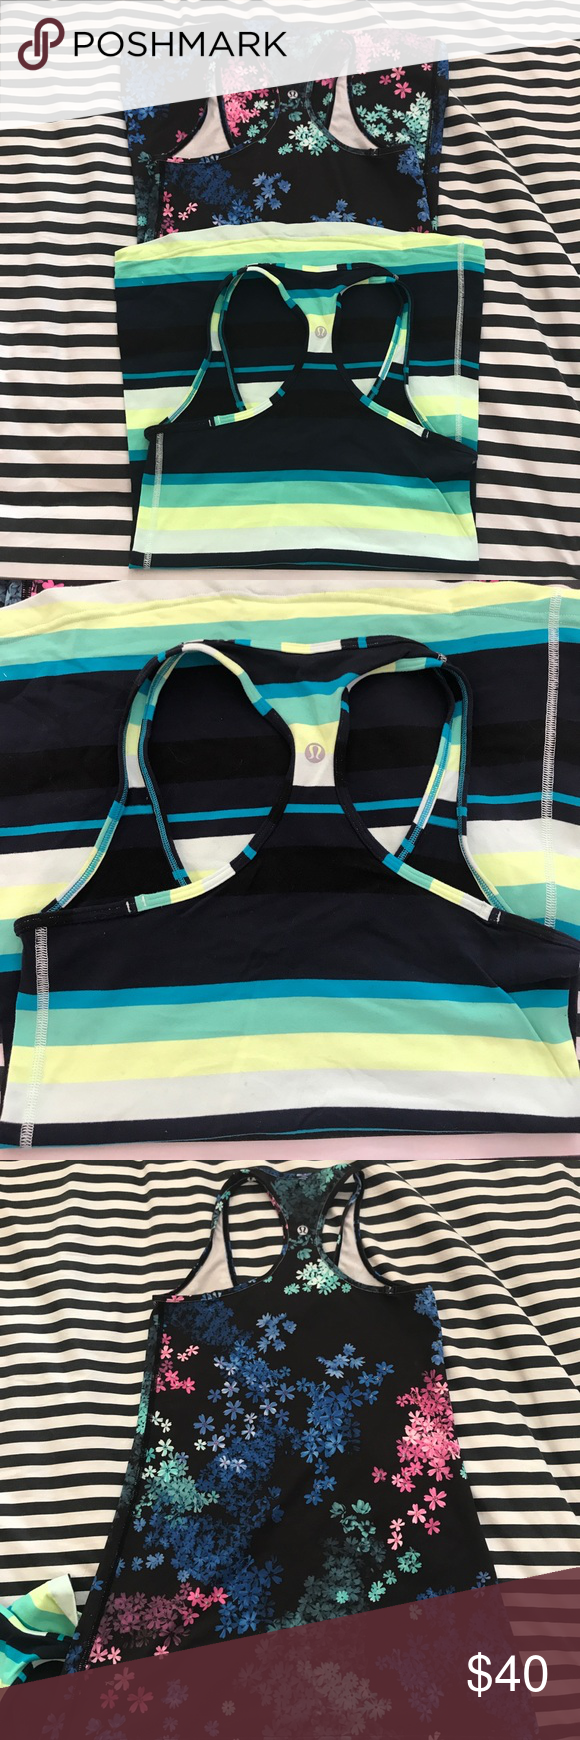 Lululemon set of 2 Cool Racerback Tanks size 6 One stripe and one floral Cool Racerback Tank in excellent condition size 6 lululemon athletica Tops Tank Tops